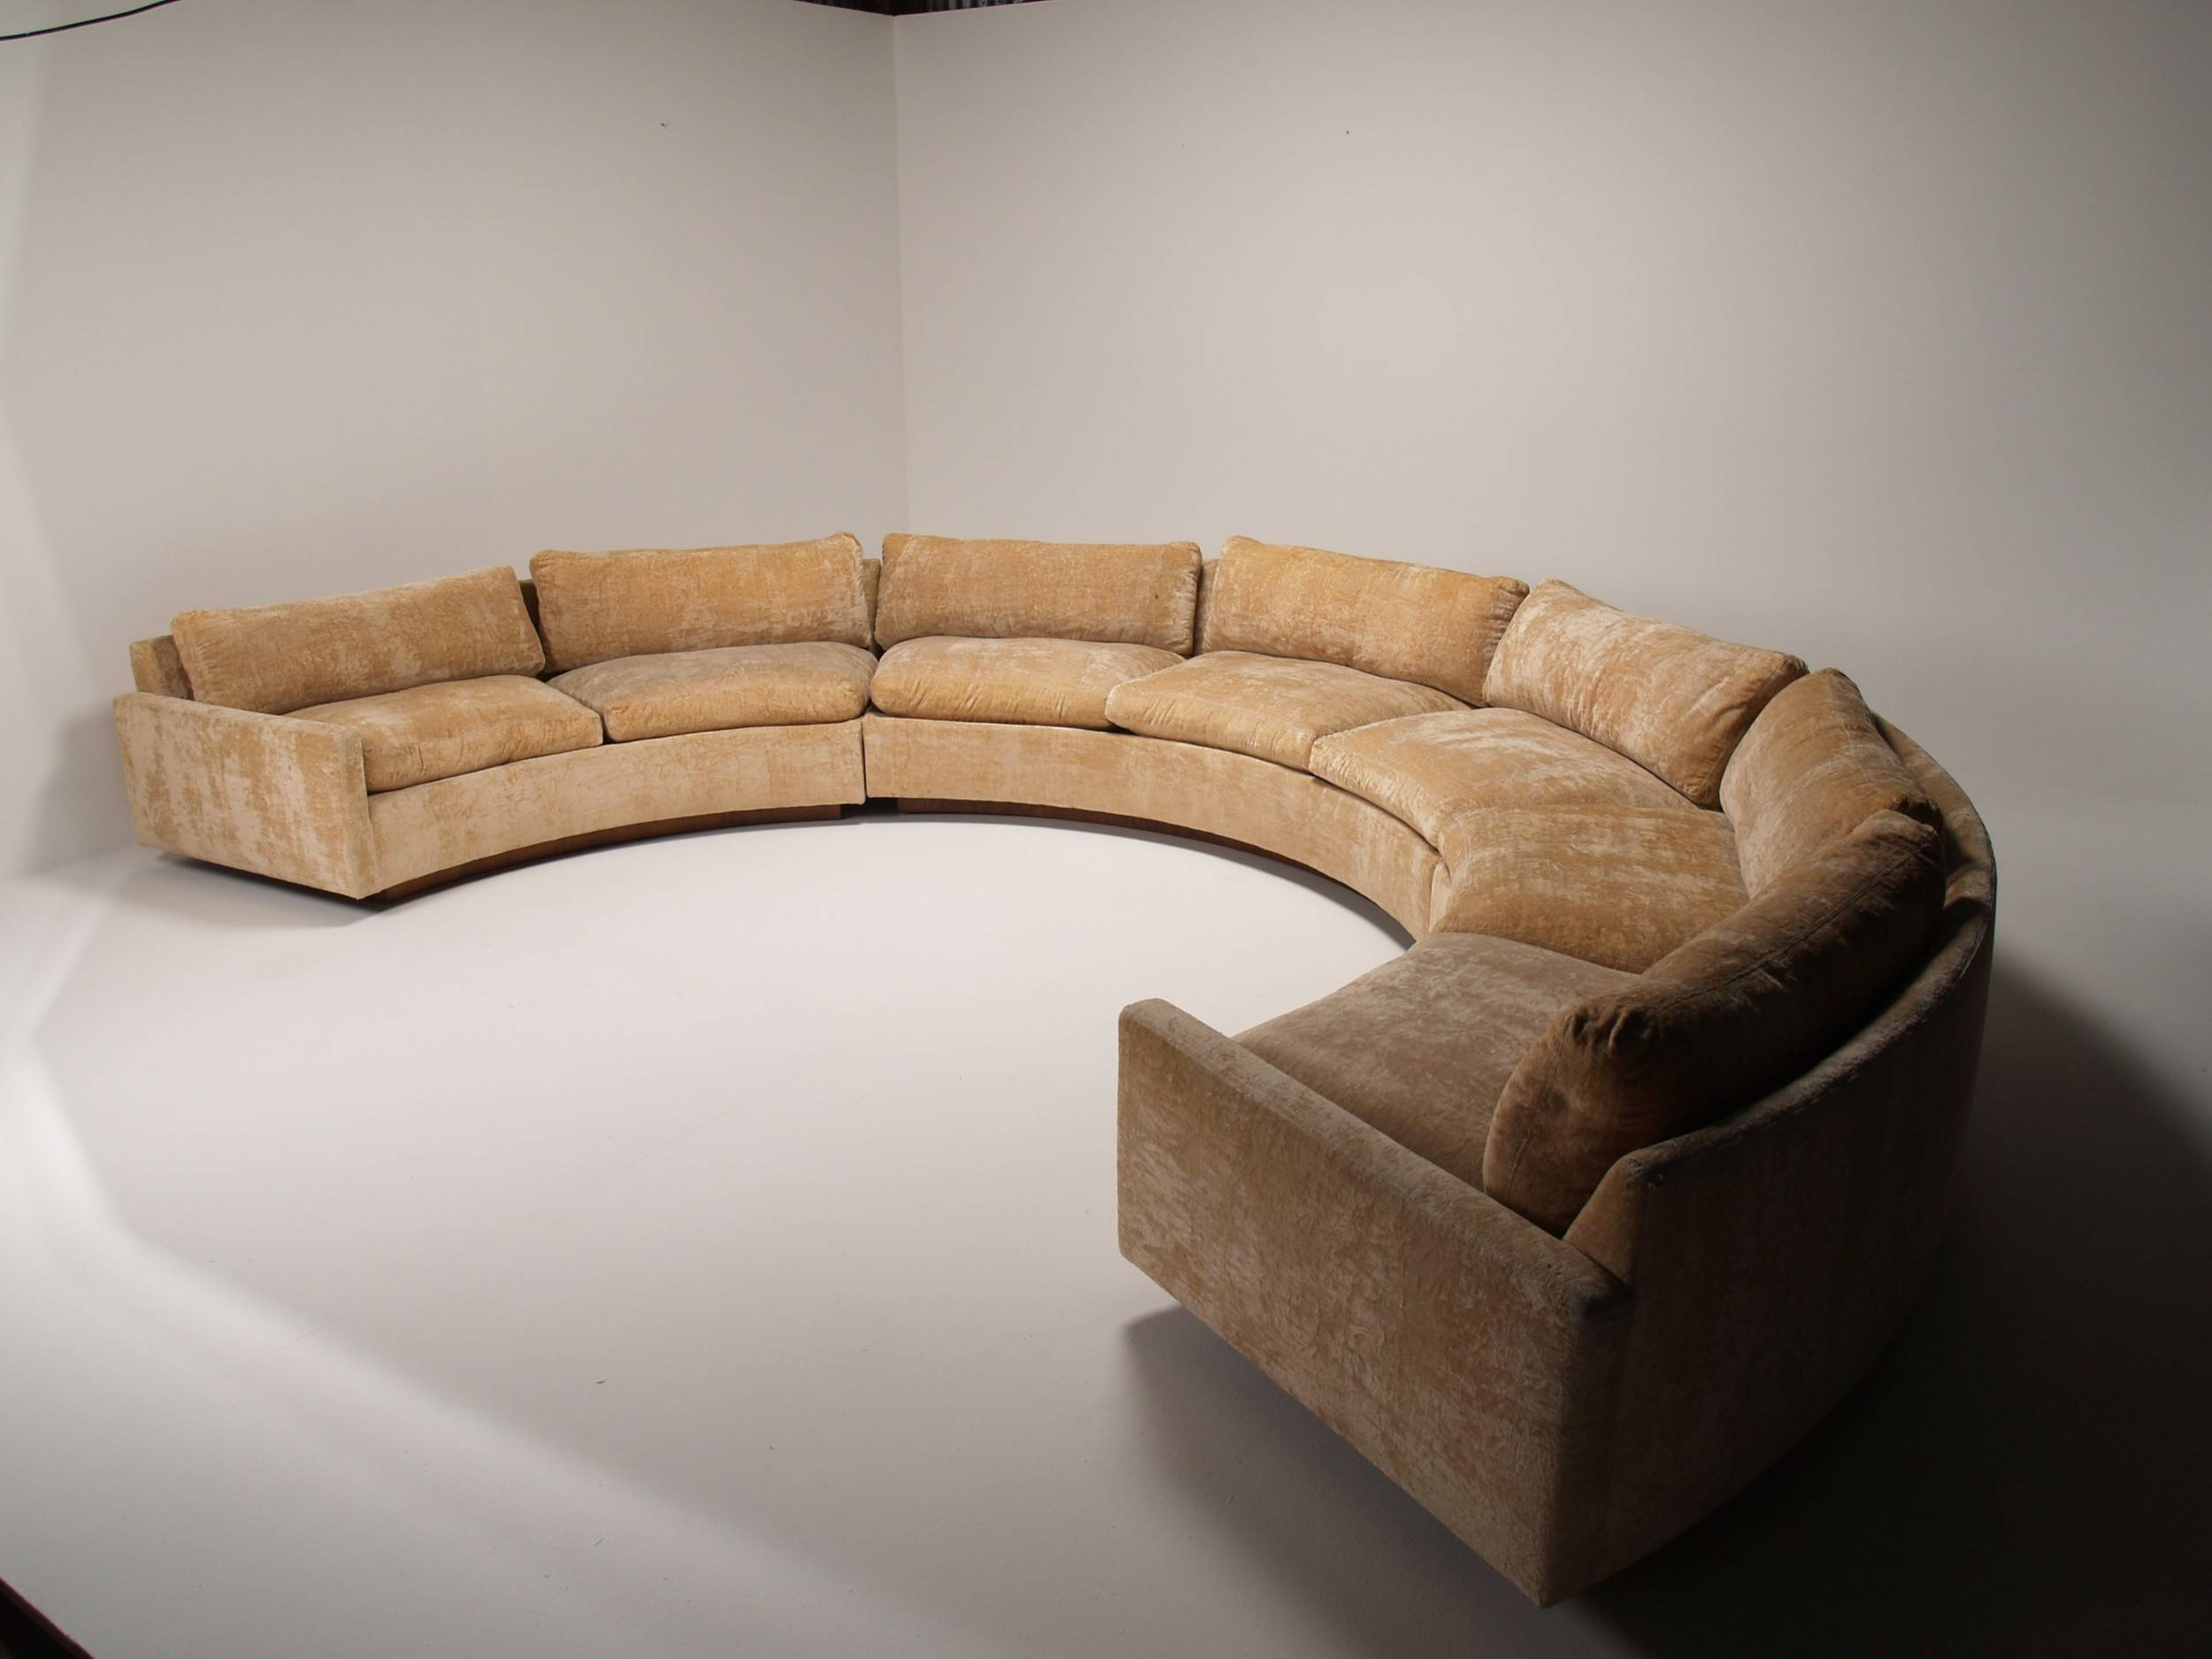 Interior Design. Semi Circle Couch Sofa: Semi Circle Couch Sofa with Semi Circular Sectional Sofas (Image 9 of 15)